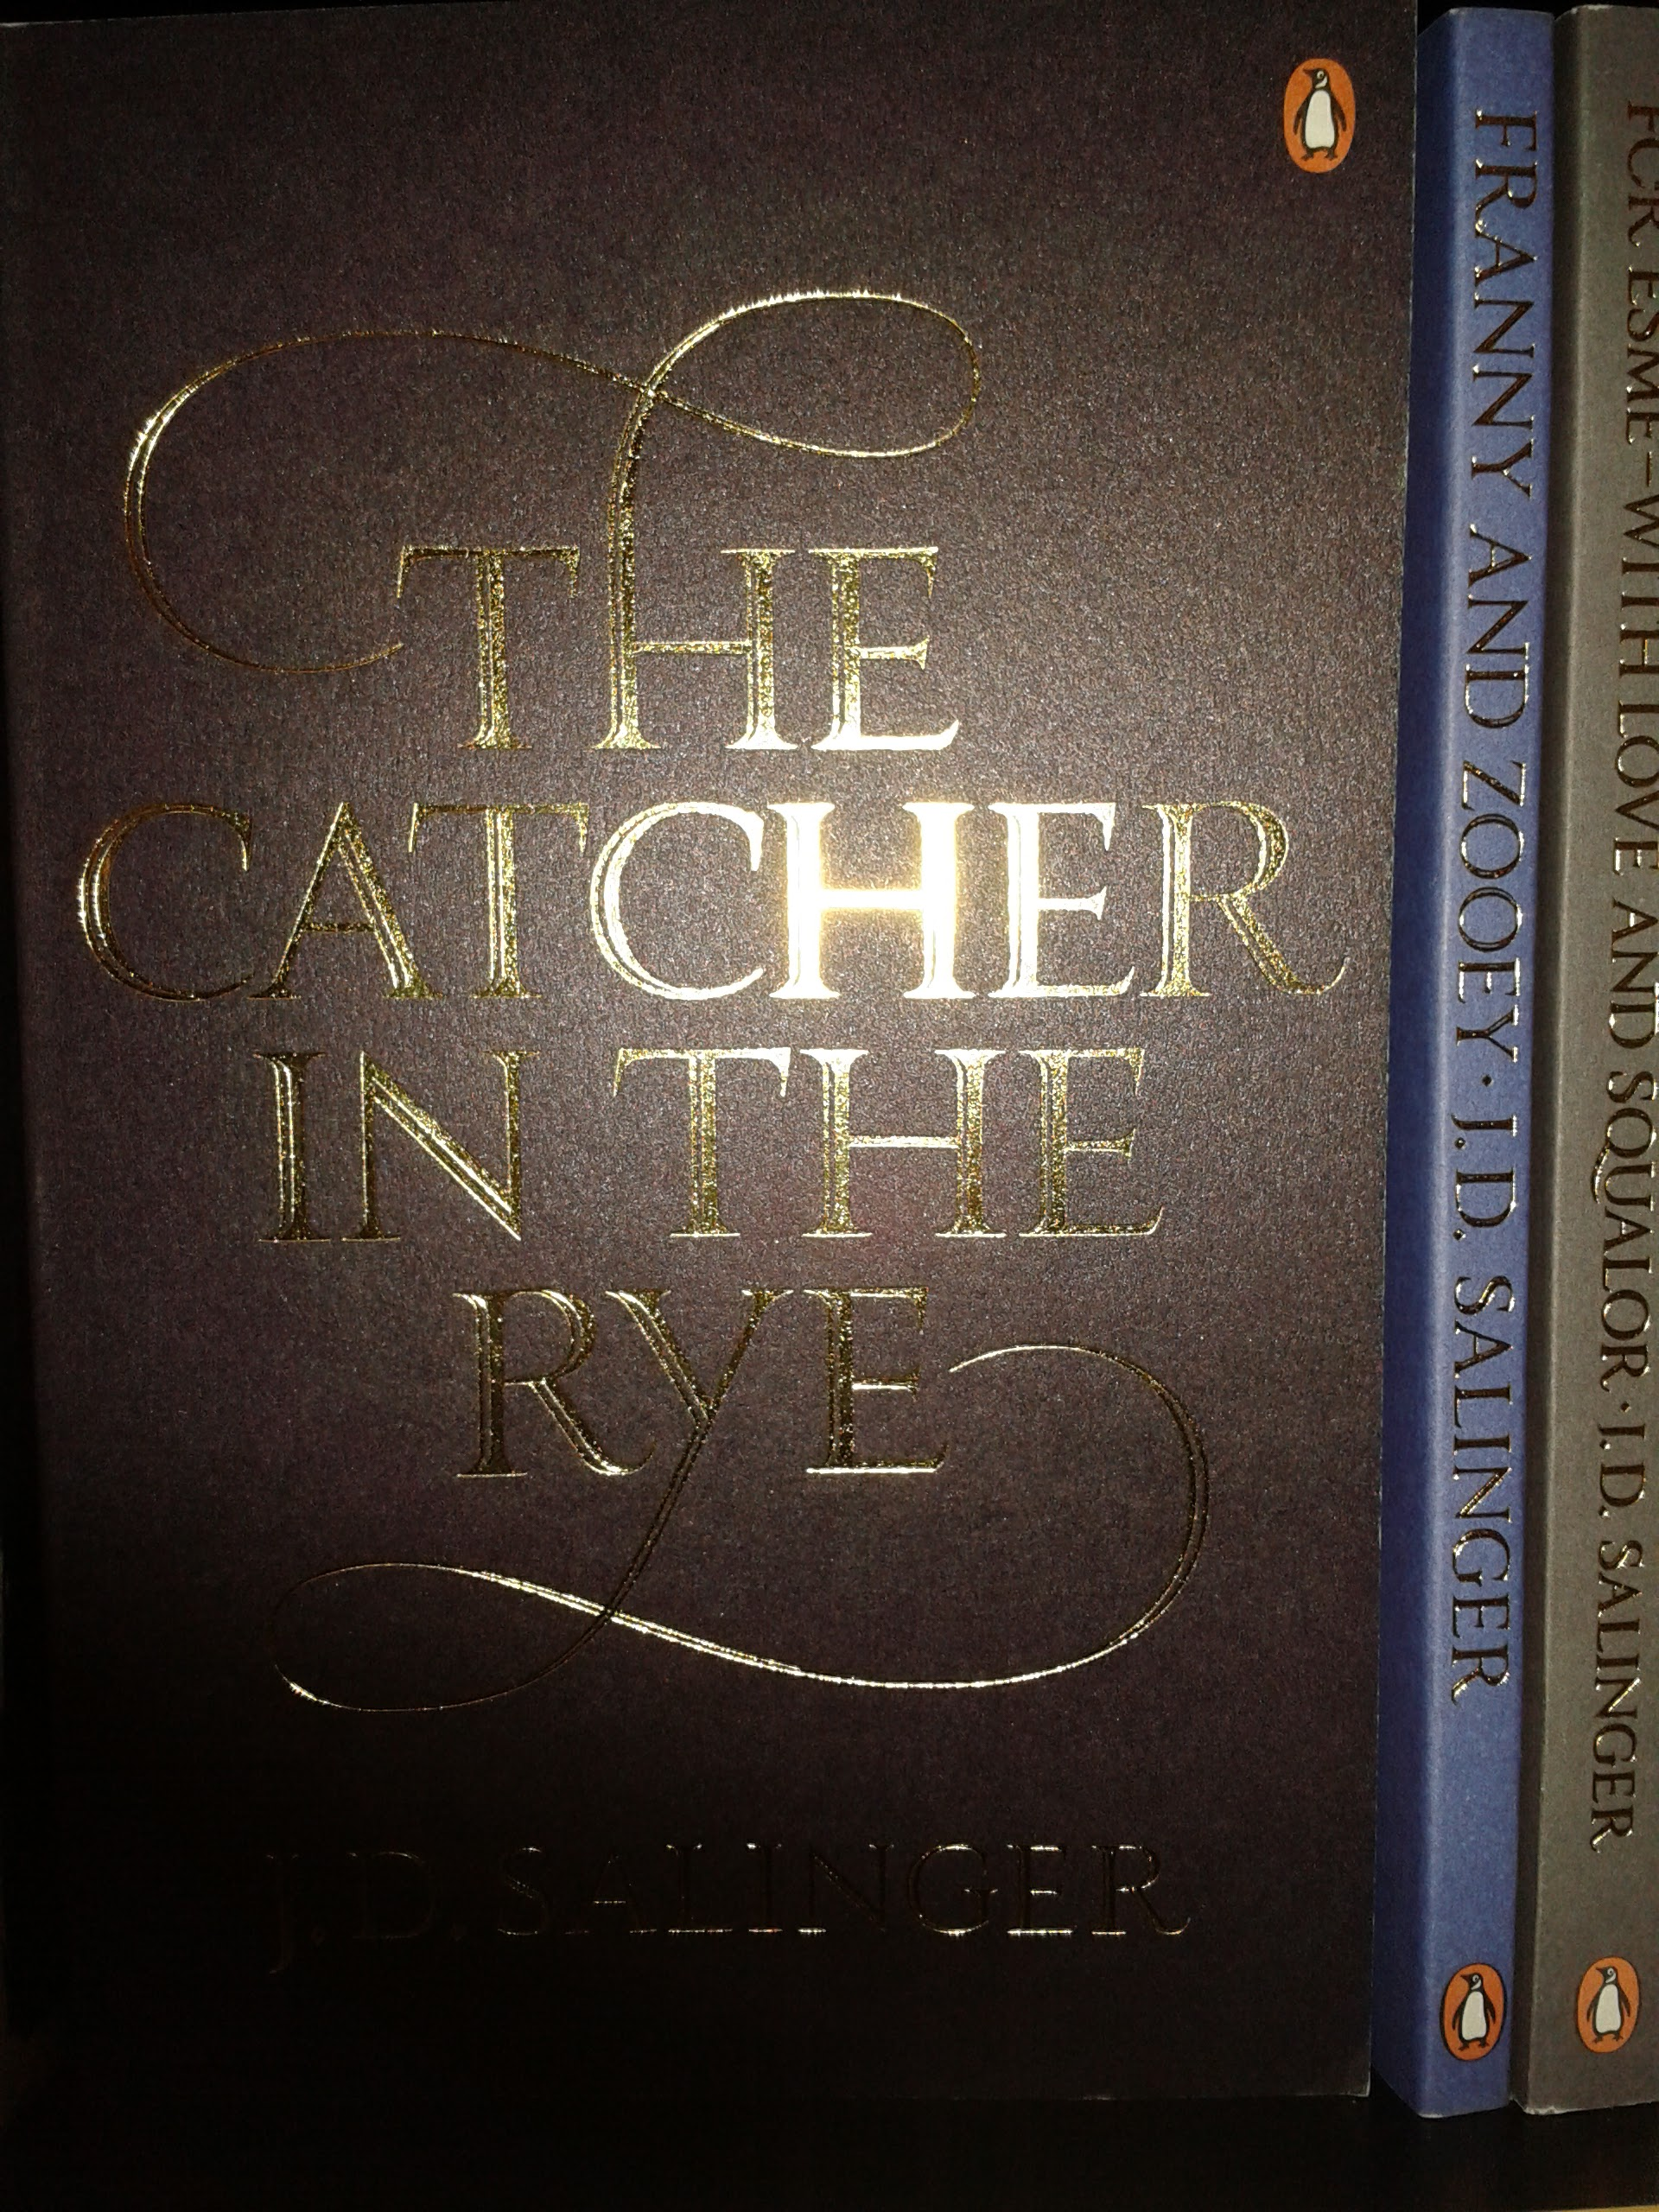 #7 The Catcher in the Rye.jpg